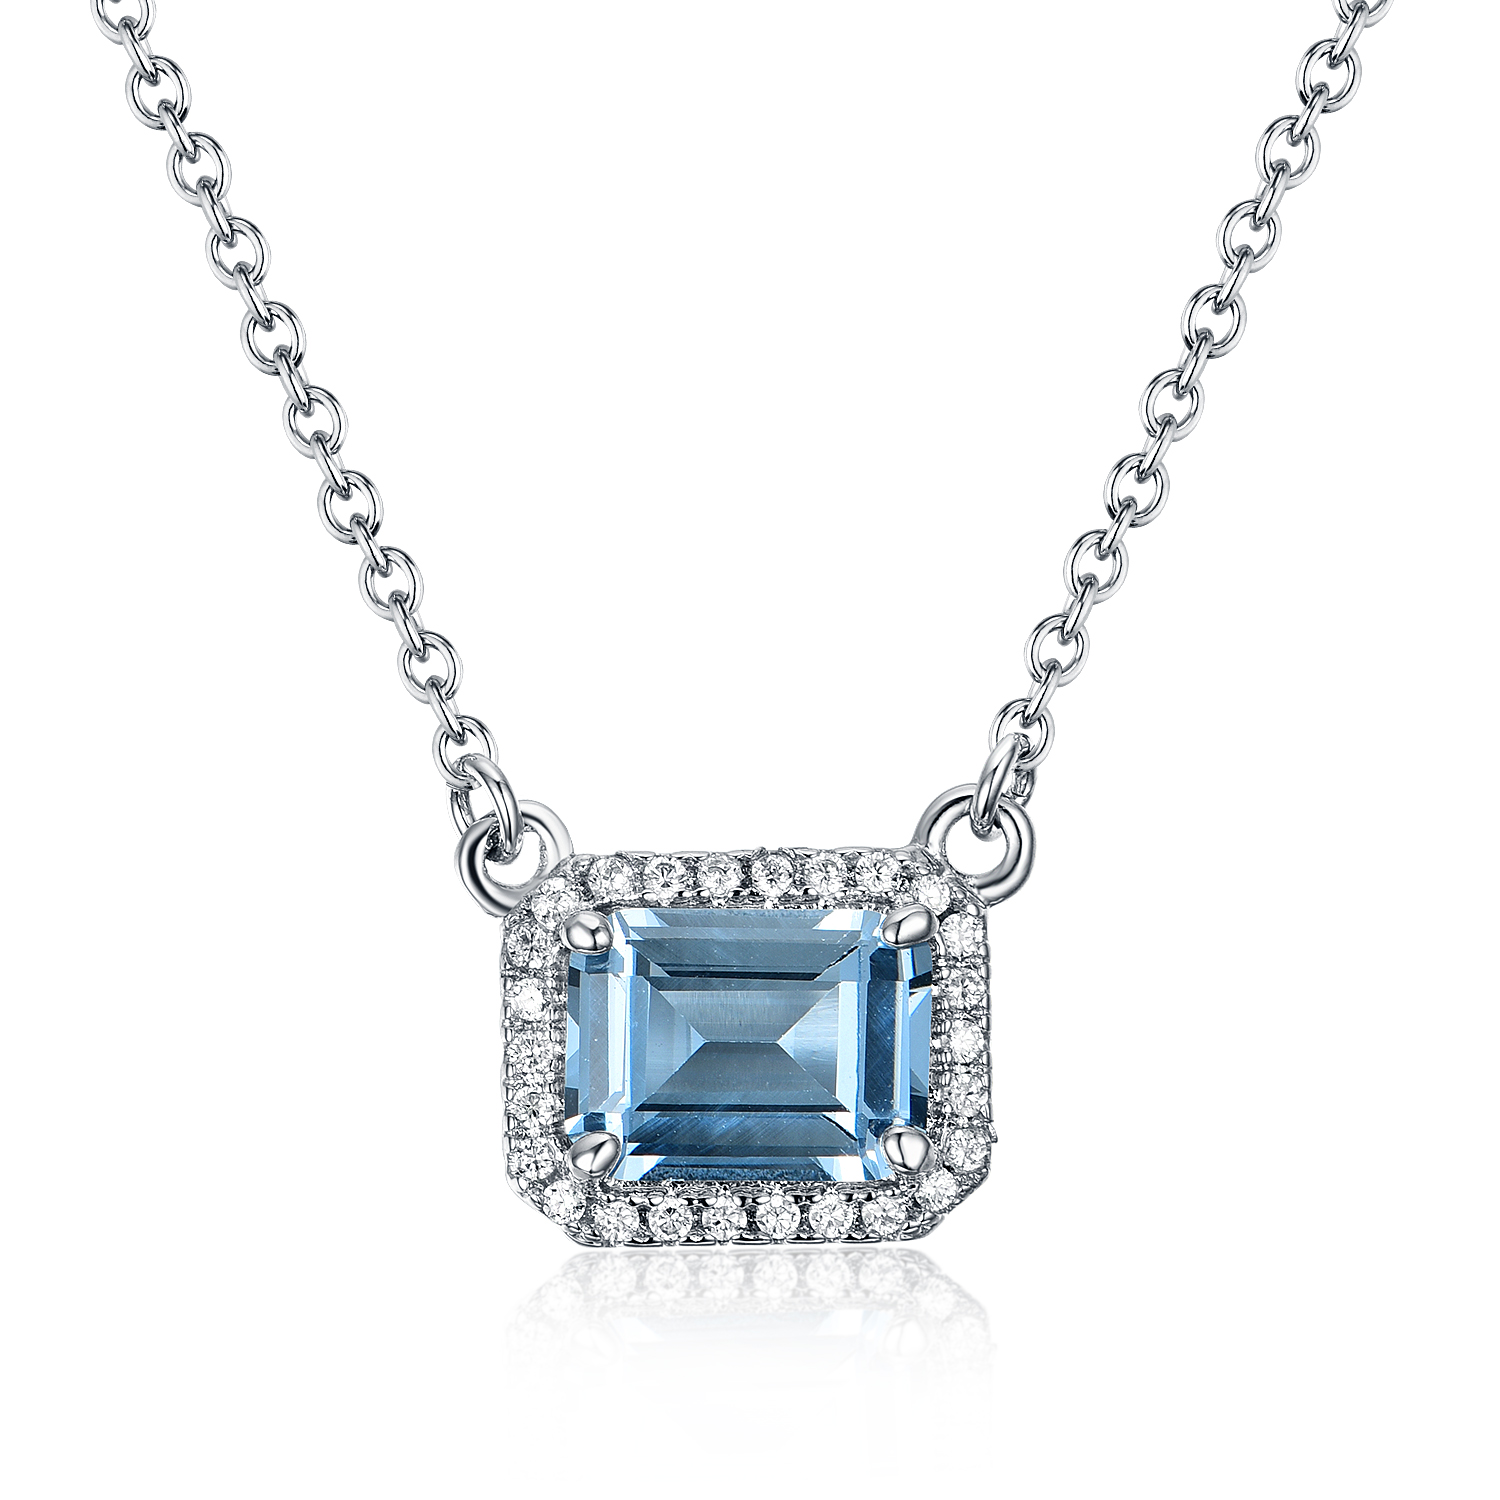 ST2674-Emerald-cut Aquamarine center,surrounded White Cubic Zircon Earring/Ring/Necklace in Sterling Silver plated Rhodium from China Top Jewelry factory